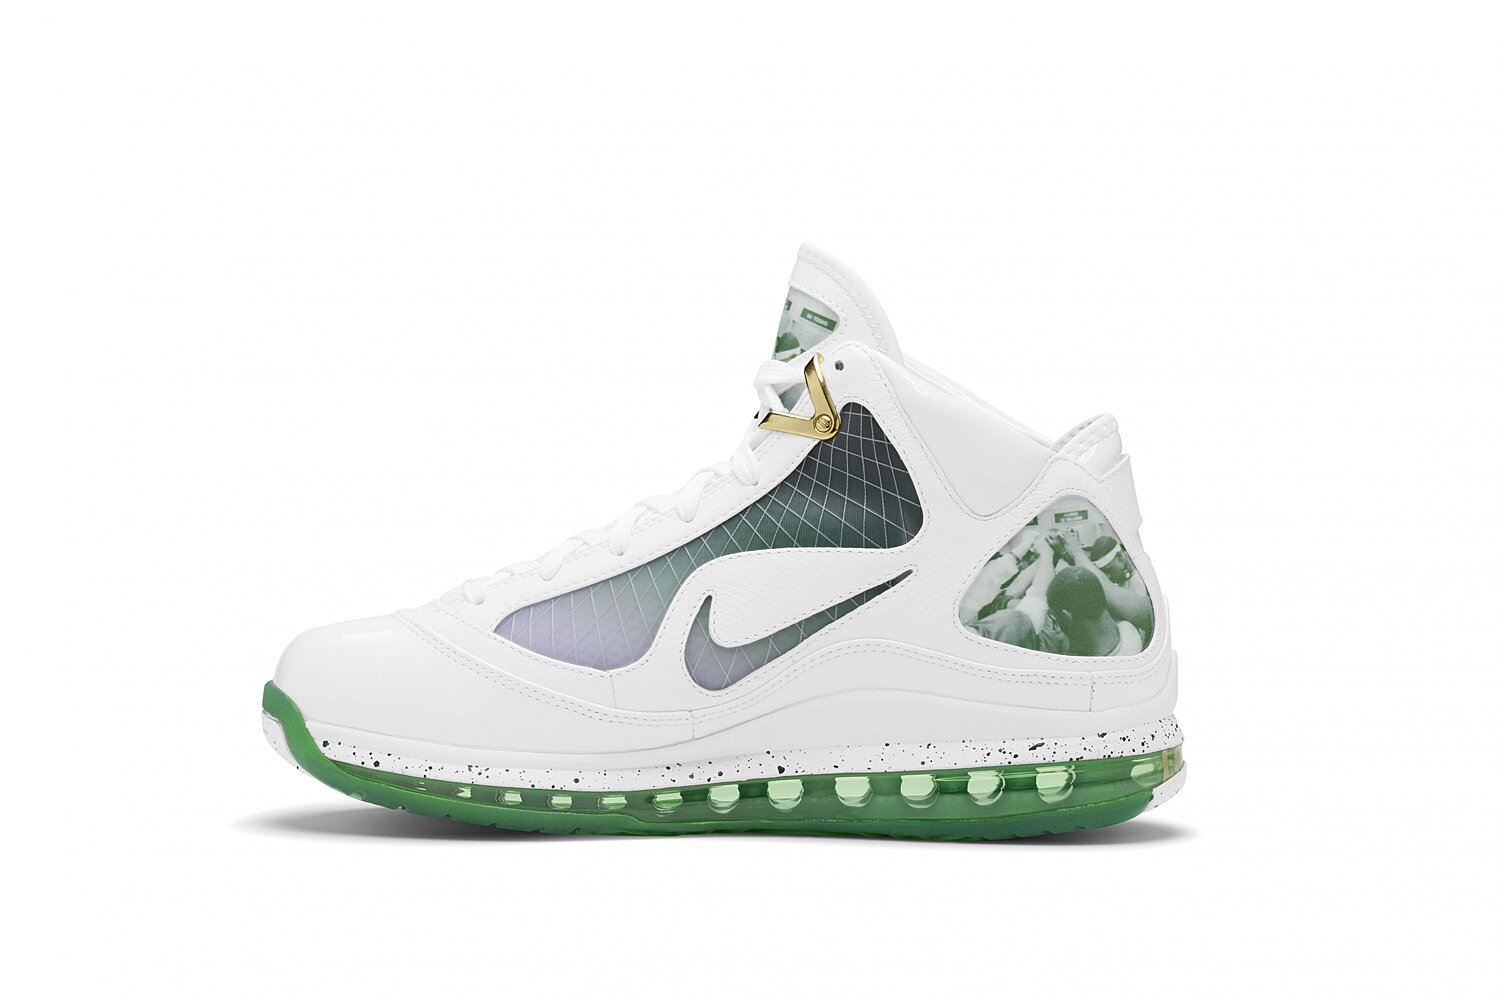 buy online 757a3 9d72e LeBron James Signature Sneakers  Ranking the Best of the King   SI.com